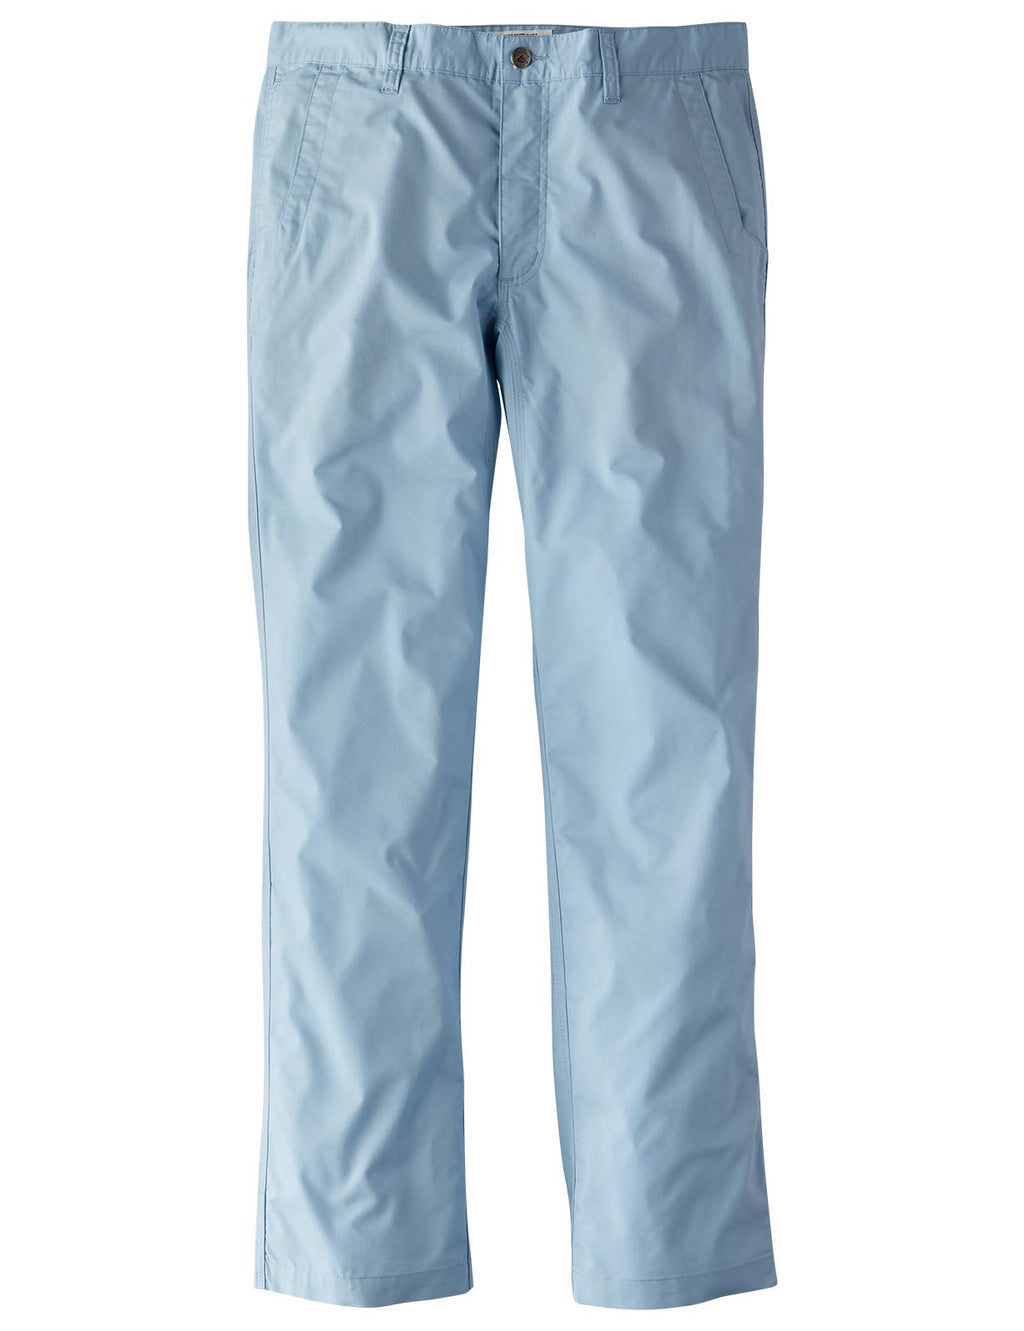 Men's Slim Fit Stretch Poplin Pant (Sale)